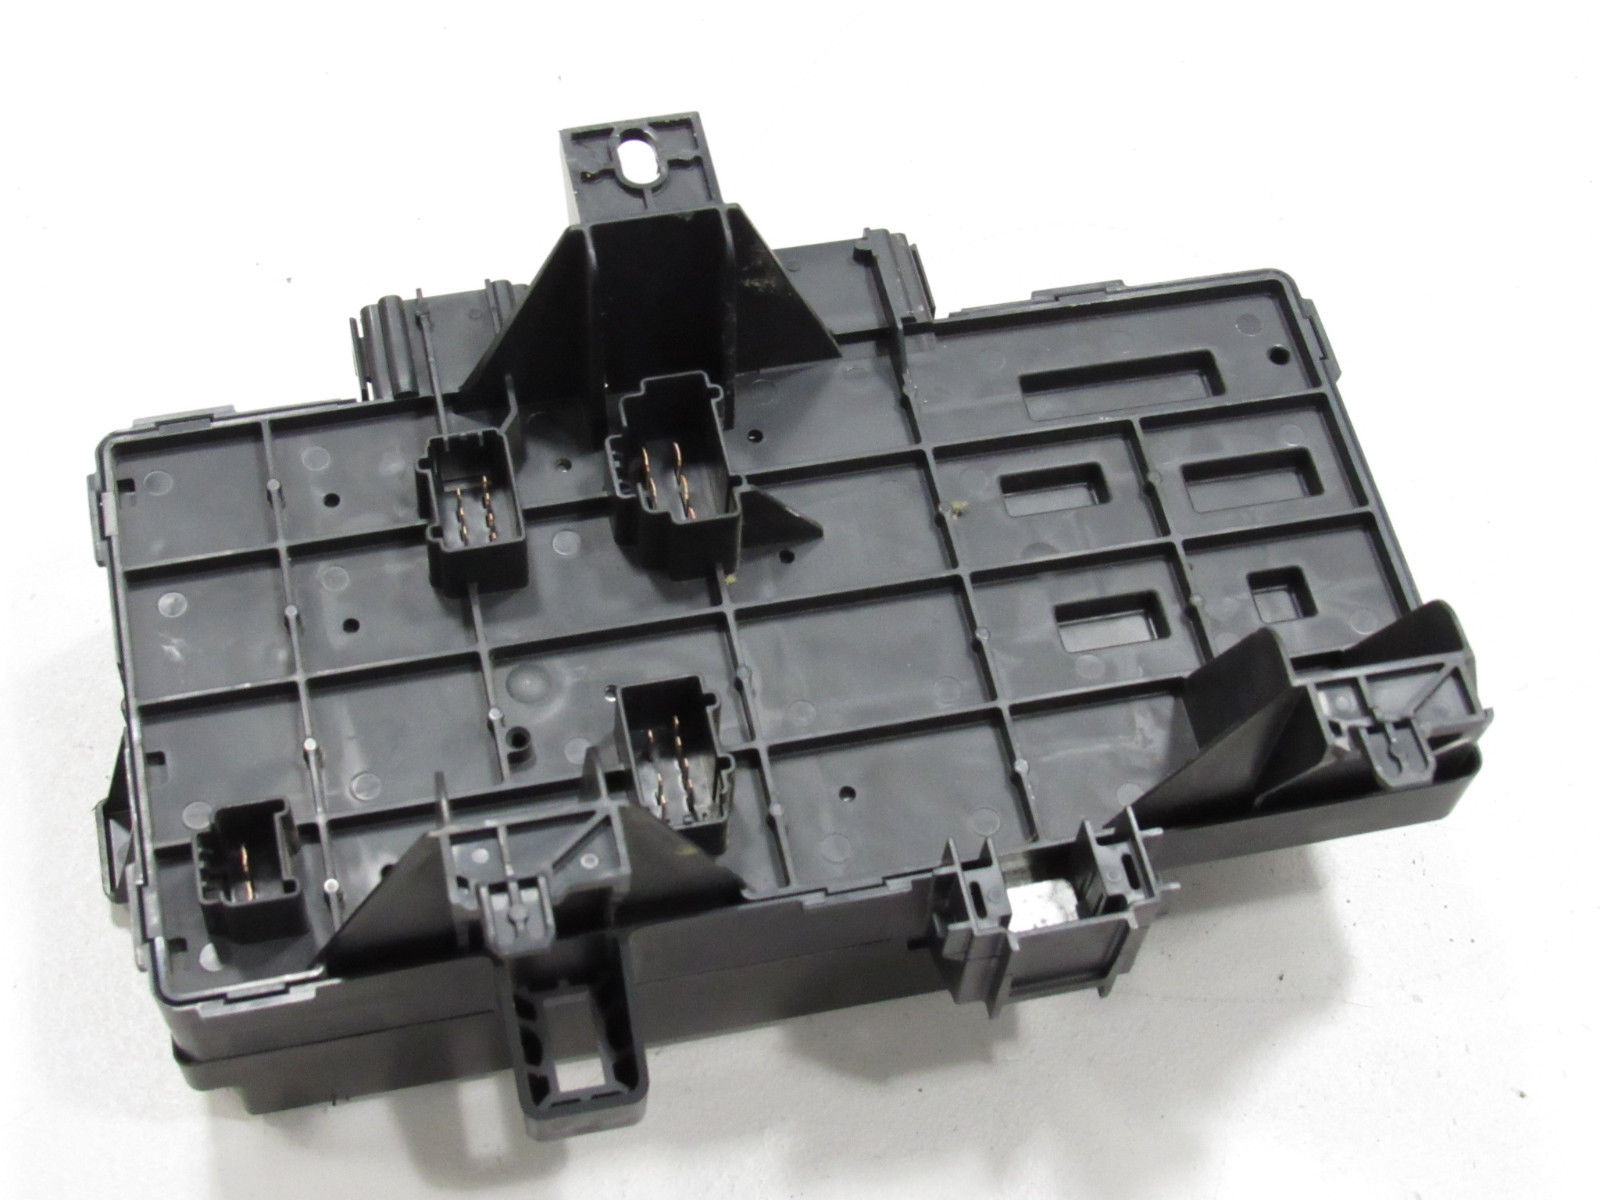 hight resolution of 03 expedition navigator interior fuse relay box block center 2l1t 14a067 an dg importapart